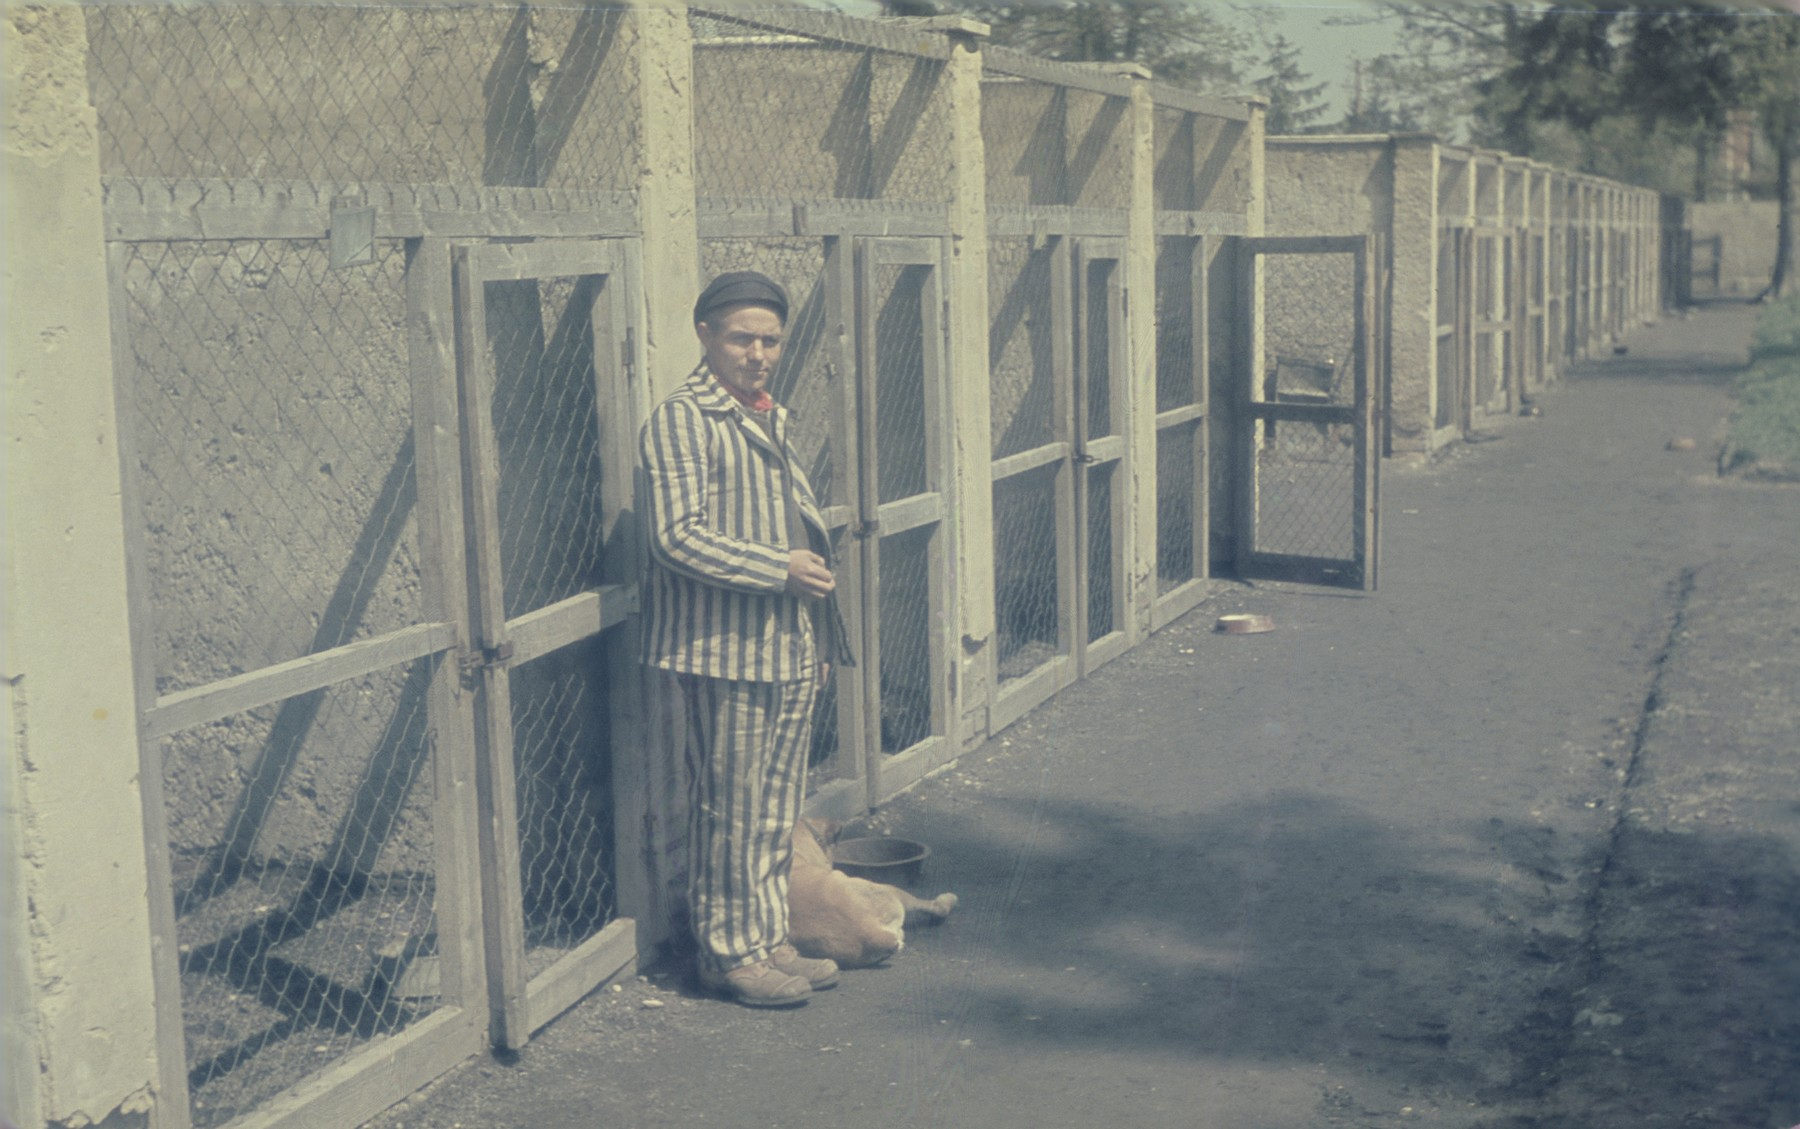 A former prisoner poses in front of the dog kennels in the newly liberated Dachau concentration camp.